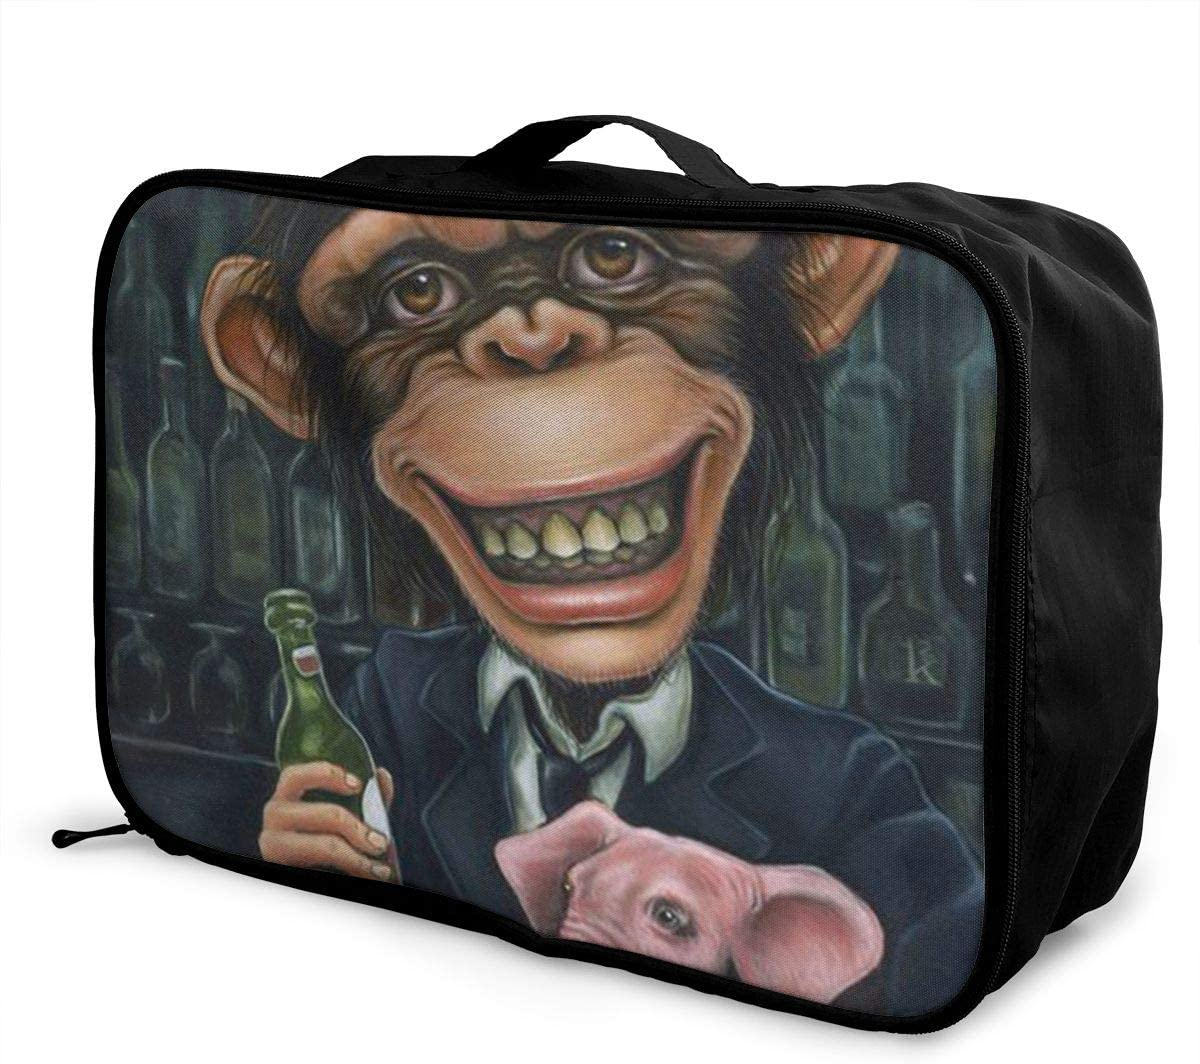 Drunk Mr.Monkey And Pet Elephant Travel Carry-on Luggage Weekender Bag Overnight Tote Flight Duffel In Trolley Handle